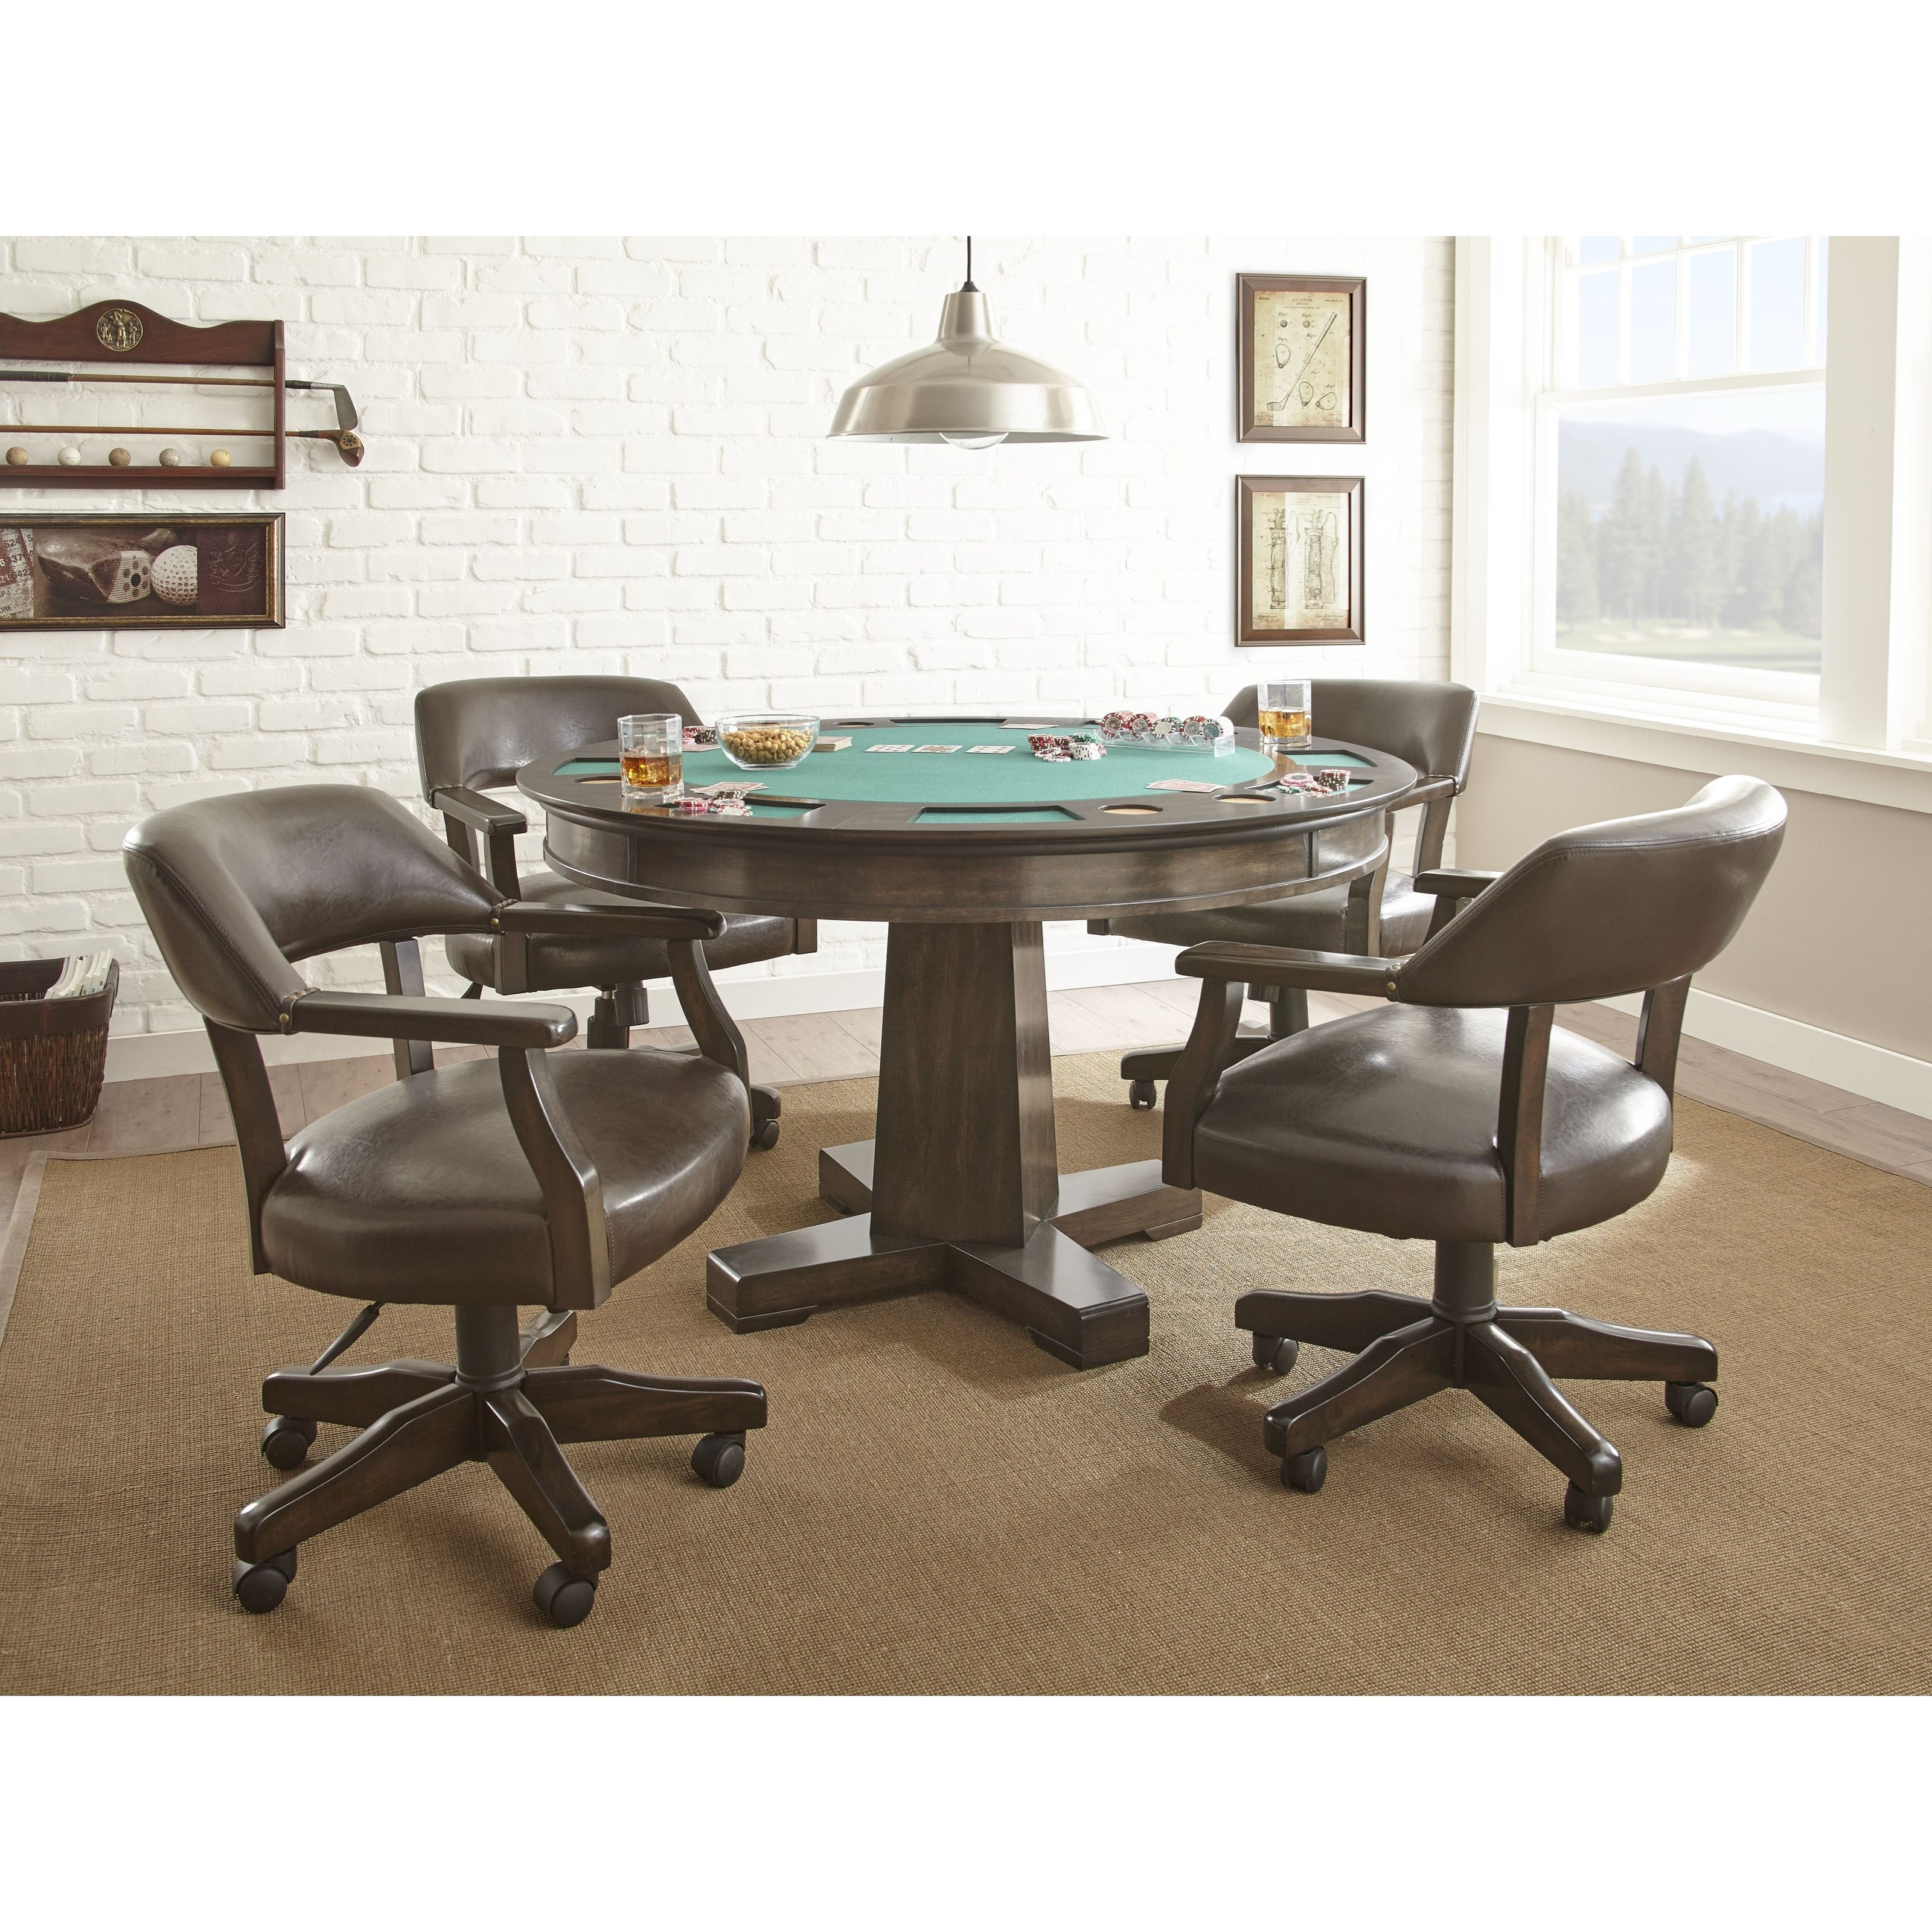 Steve silver ruby 2 in 1 round game table olinde 39 s for 12 in 1 game table groupon